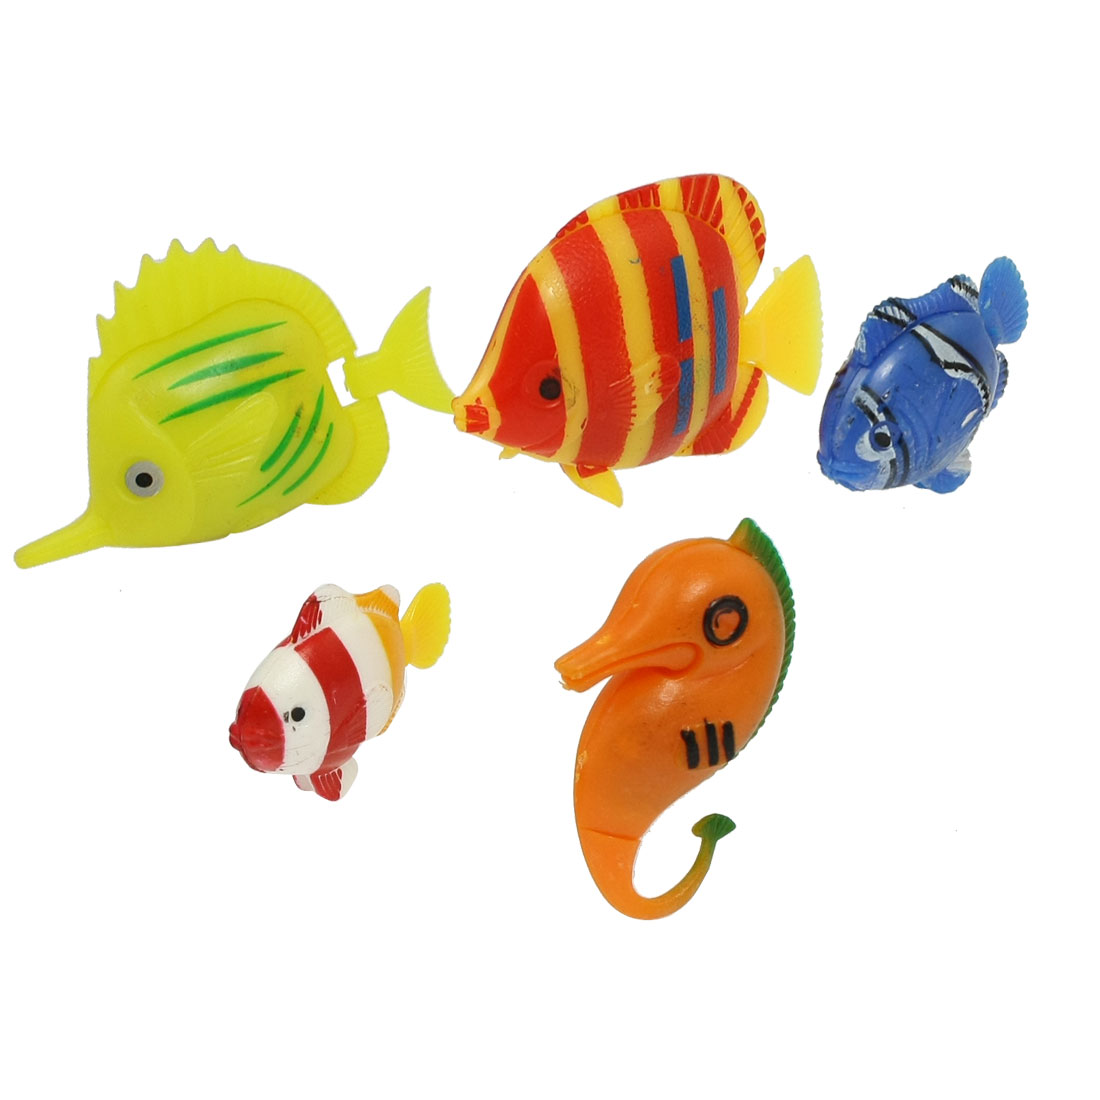 5 Pcs Multicolored Swing Tail Floating Plastic Seahorse Fish Ornament for Aquarium